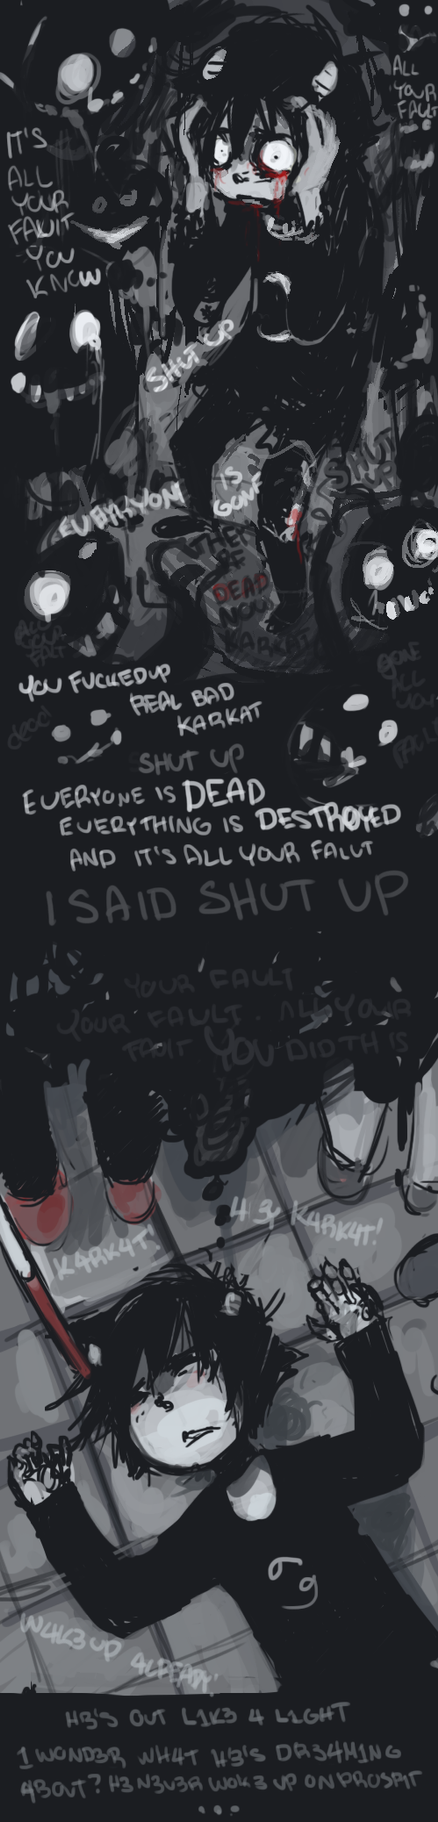 Nightmares by Karkat-Vantas